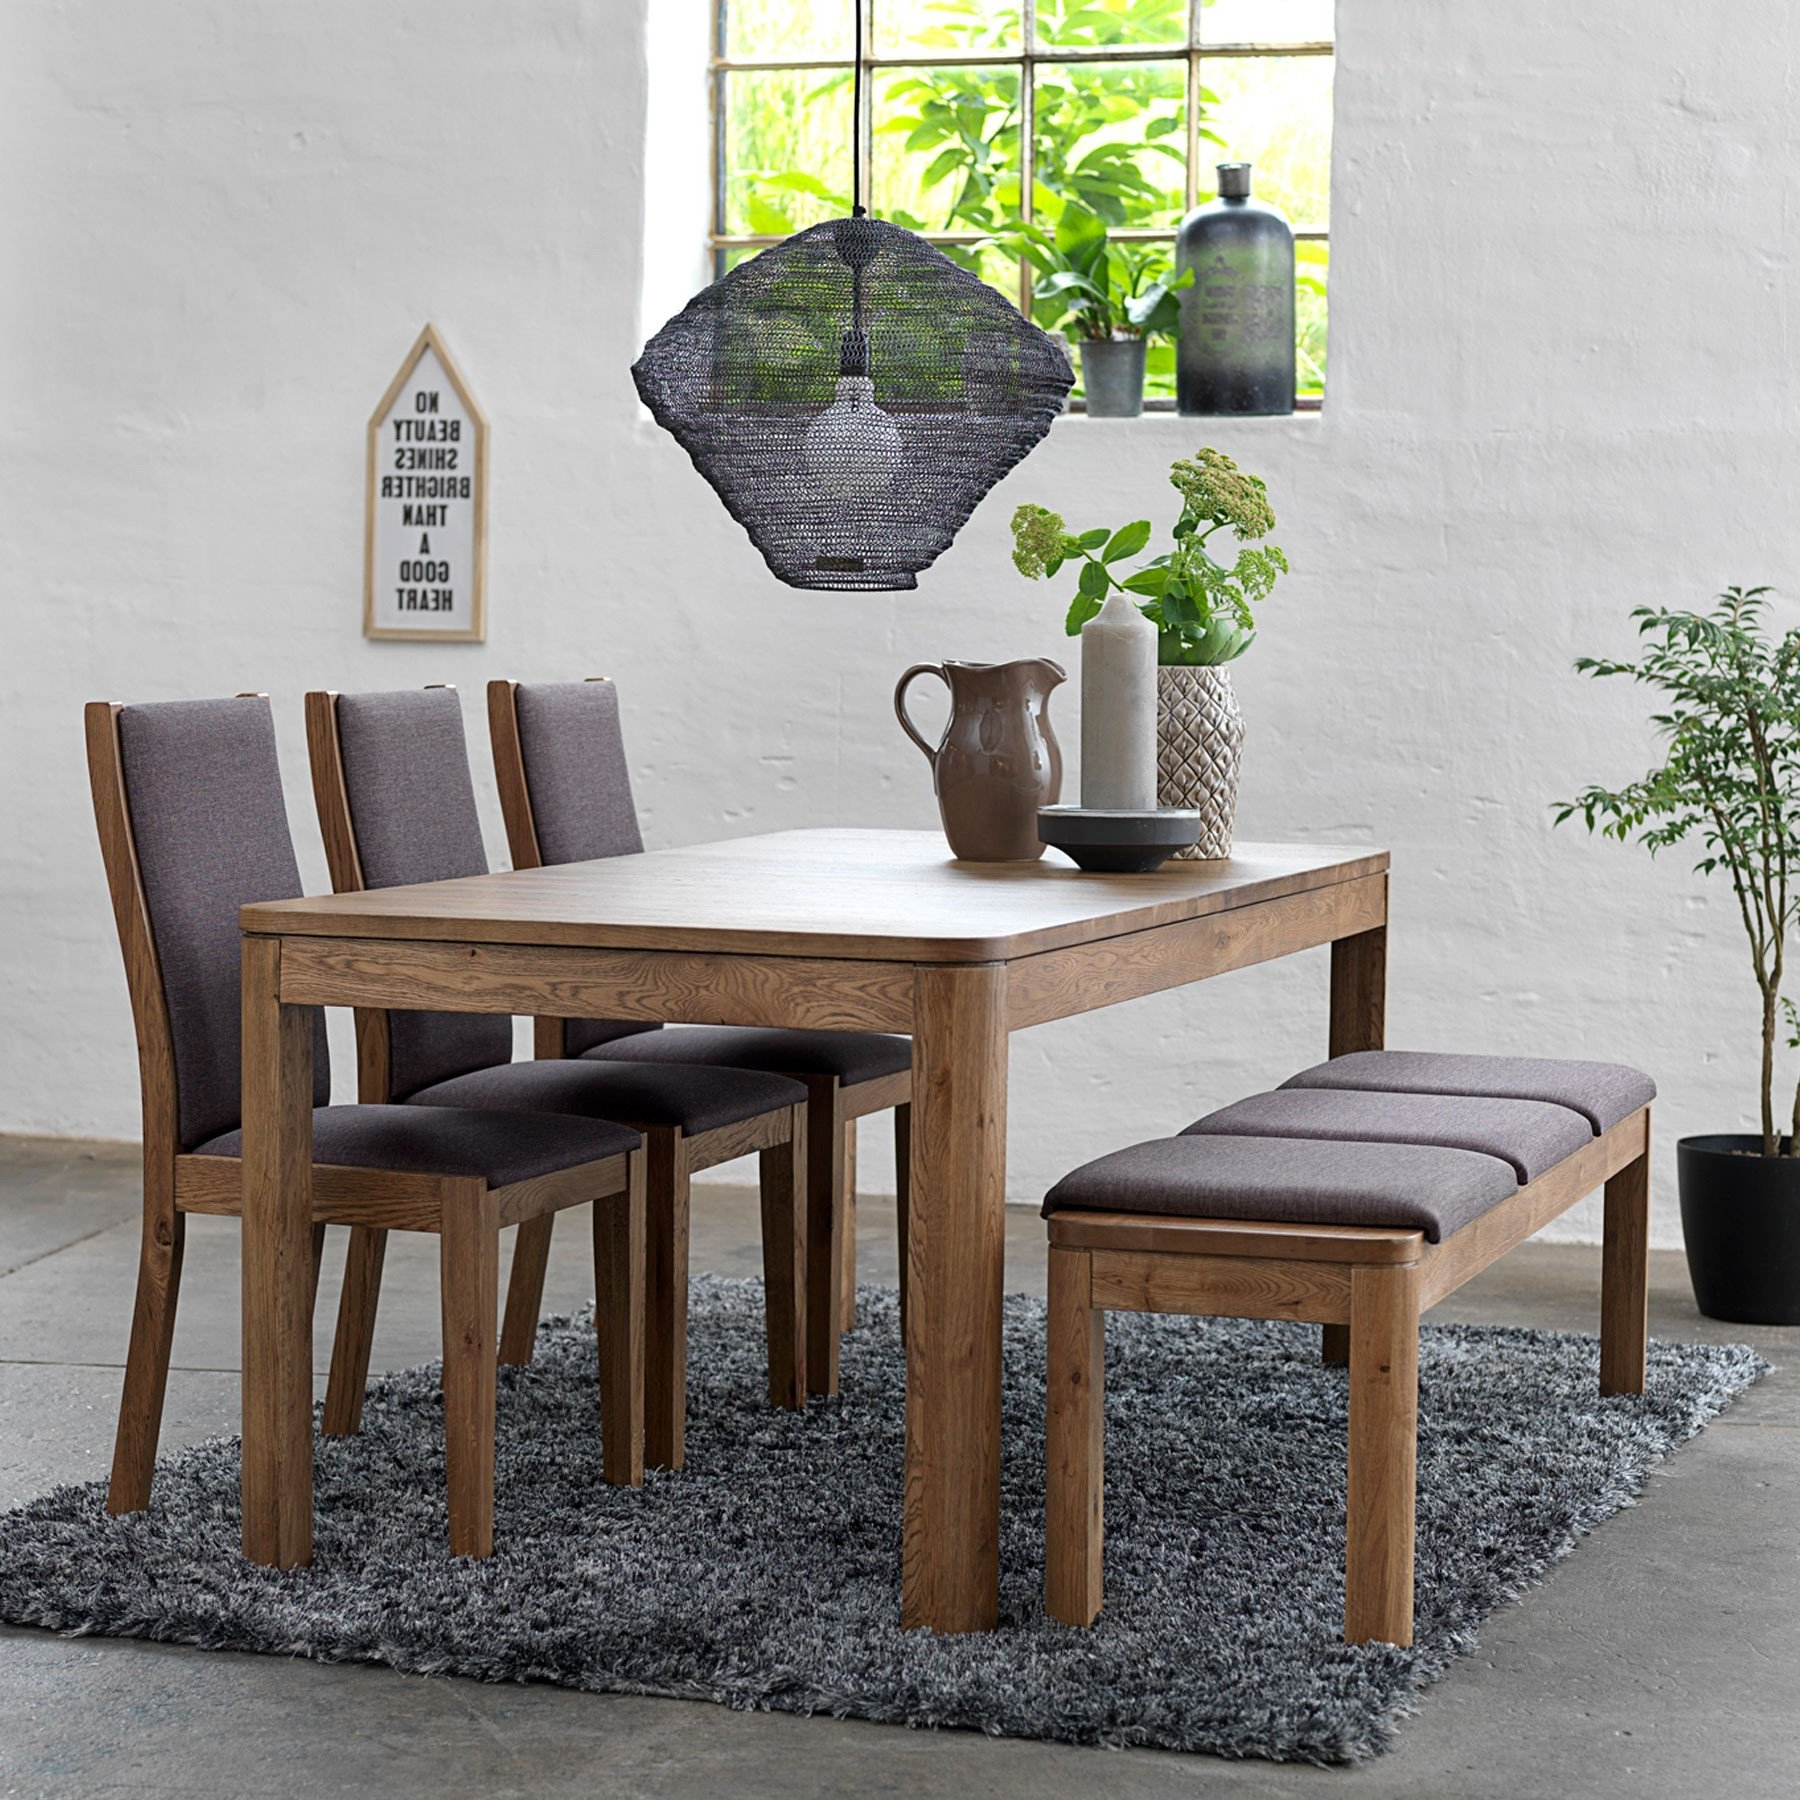 Well Known Contemporary 4 Seating Square Dining Tables For 50+ Dining Table With Bench You'll Love In 2020 – Visual Hunt (View 28 of 30)